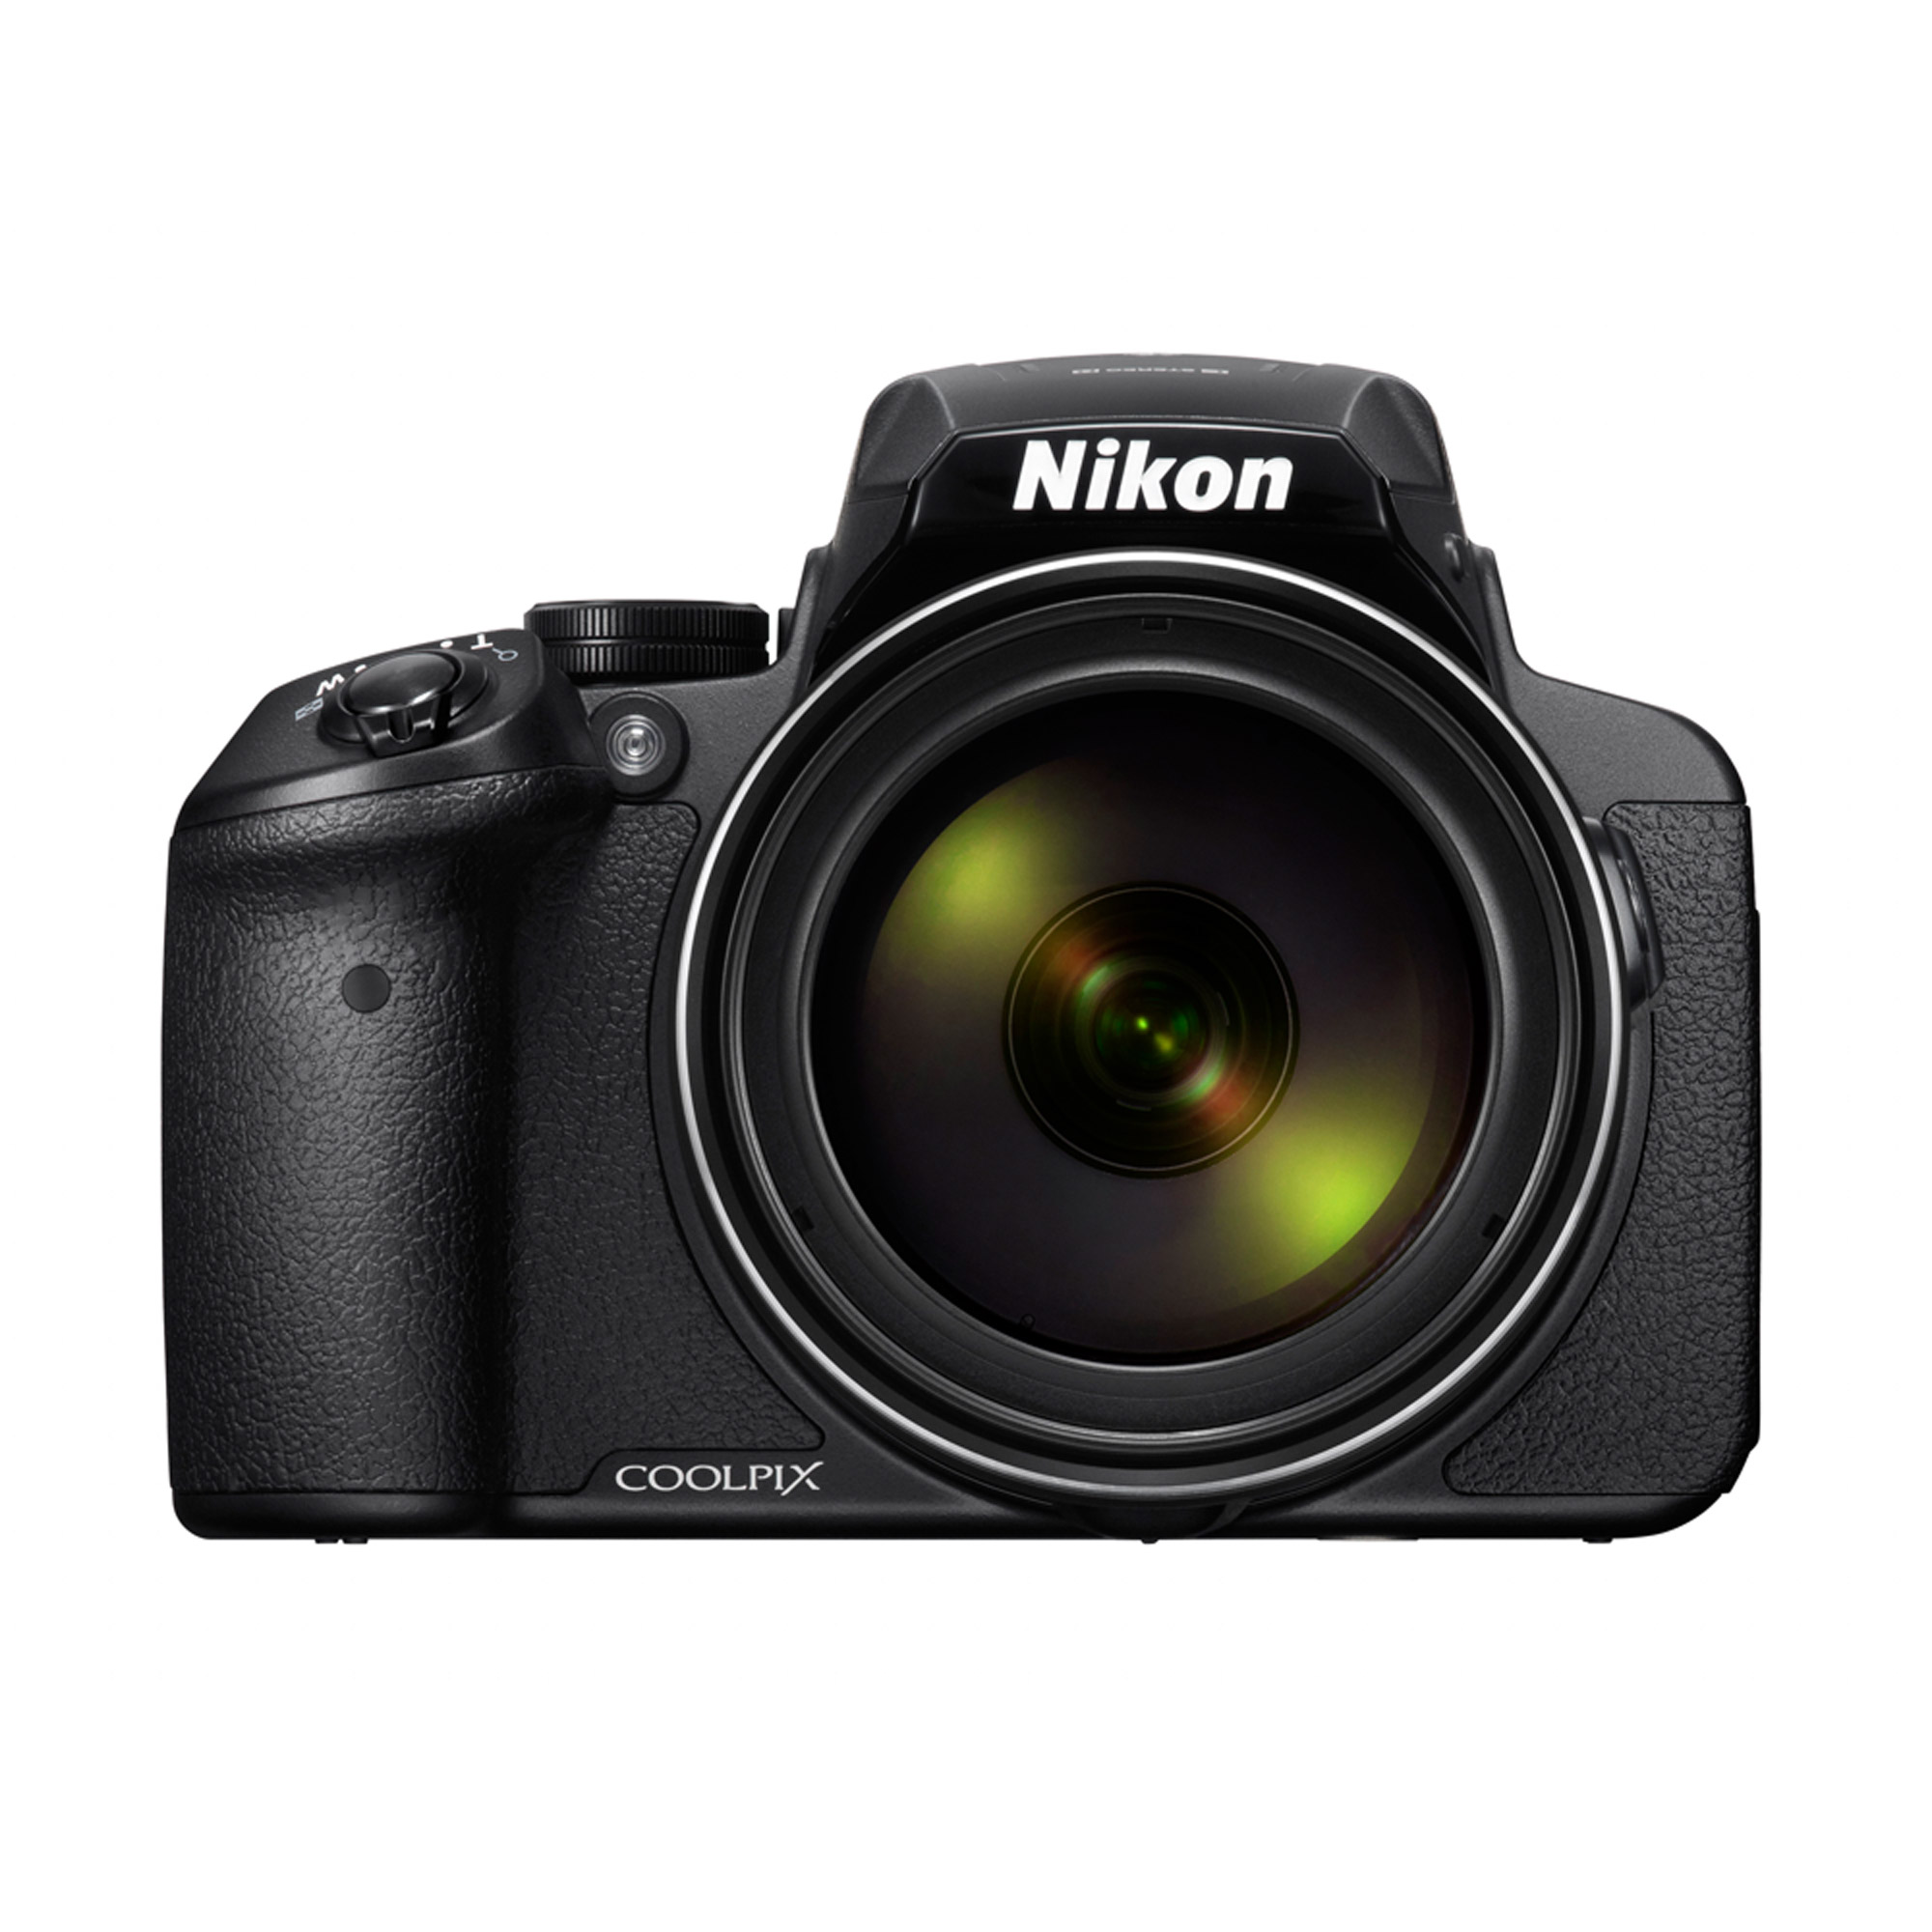 Nikon Silver COOLPIX P900 Digital Camera with 16 Megapixels and 83x Optical Zoom by Nikon